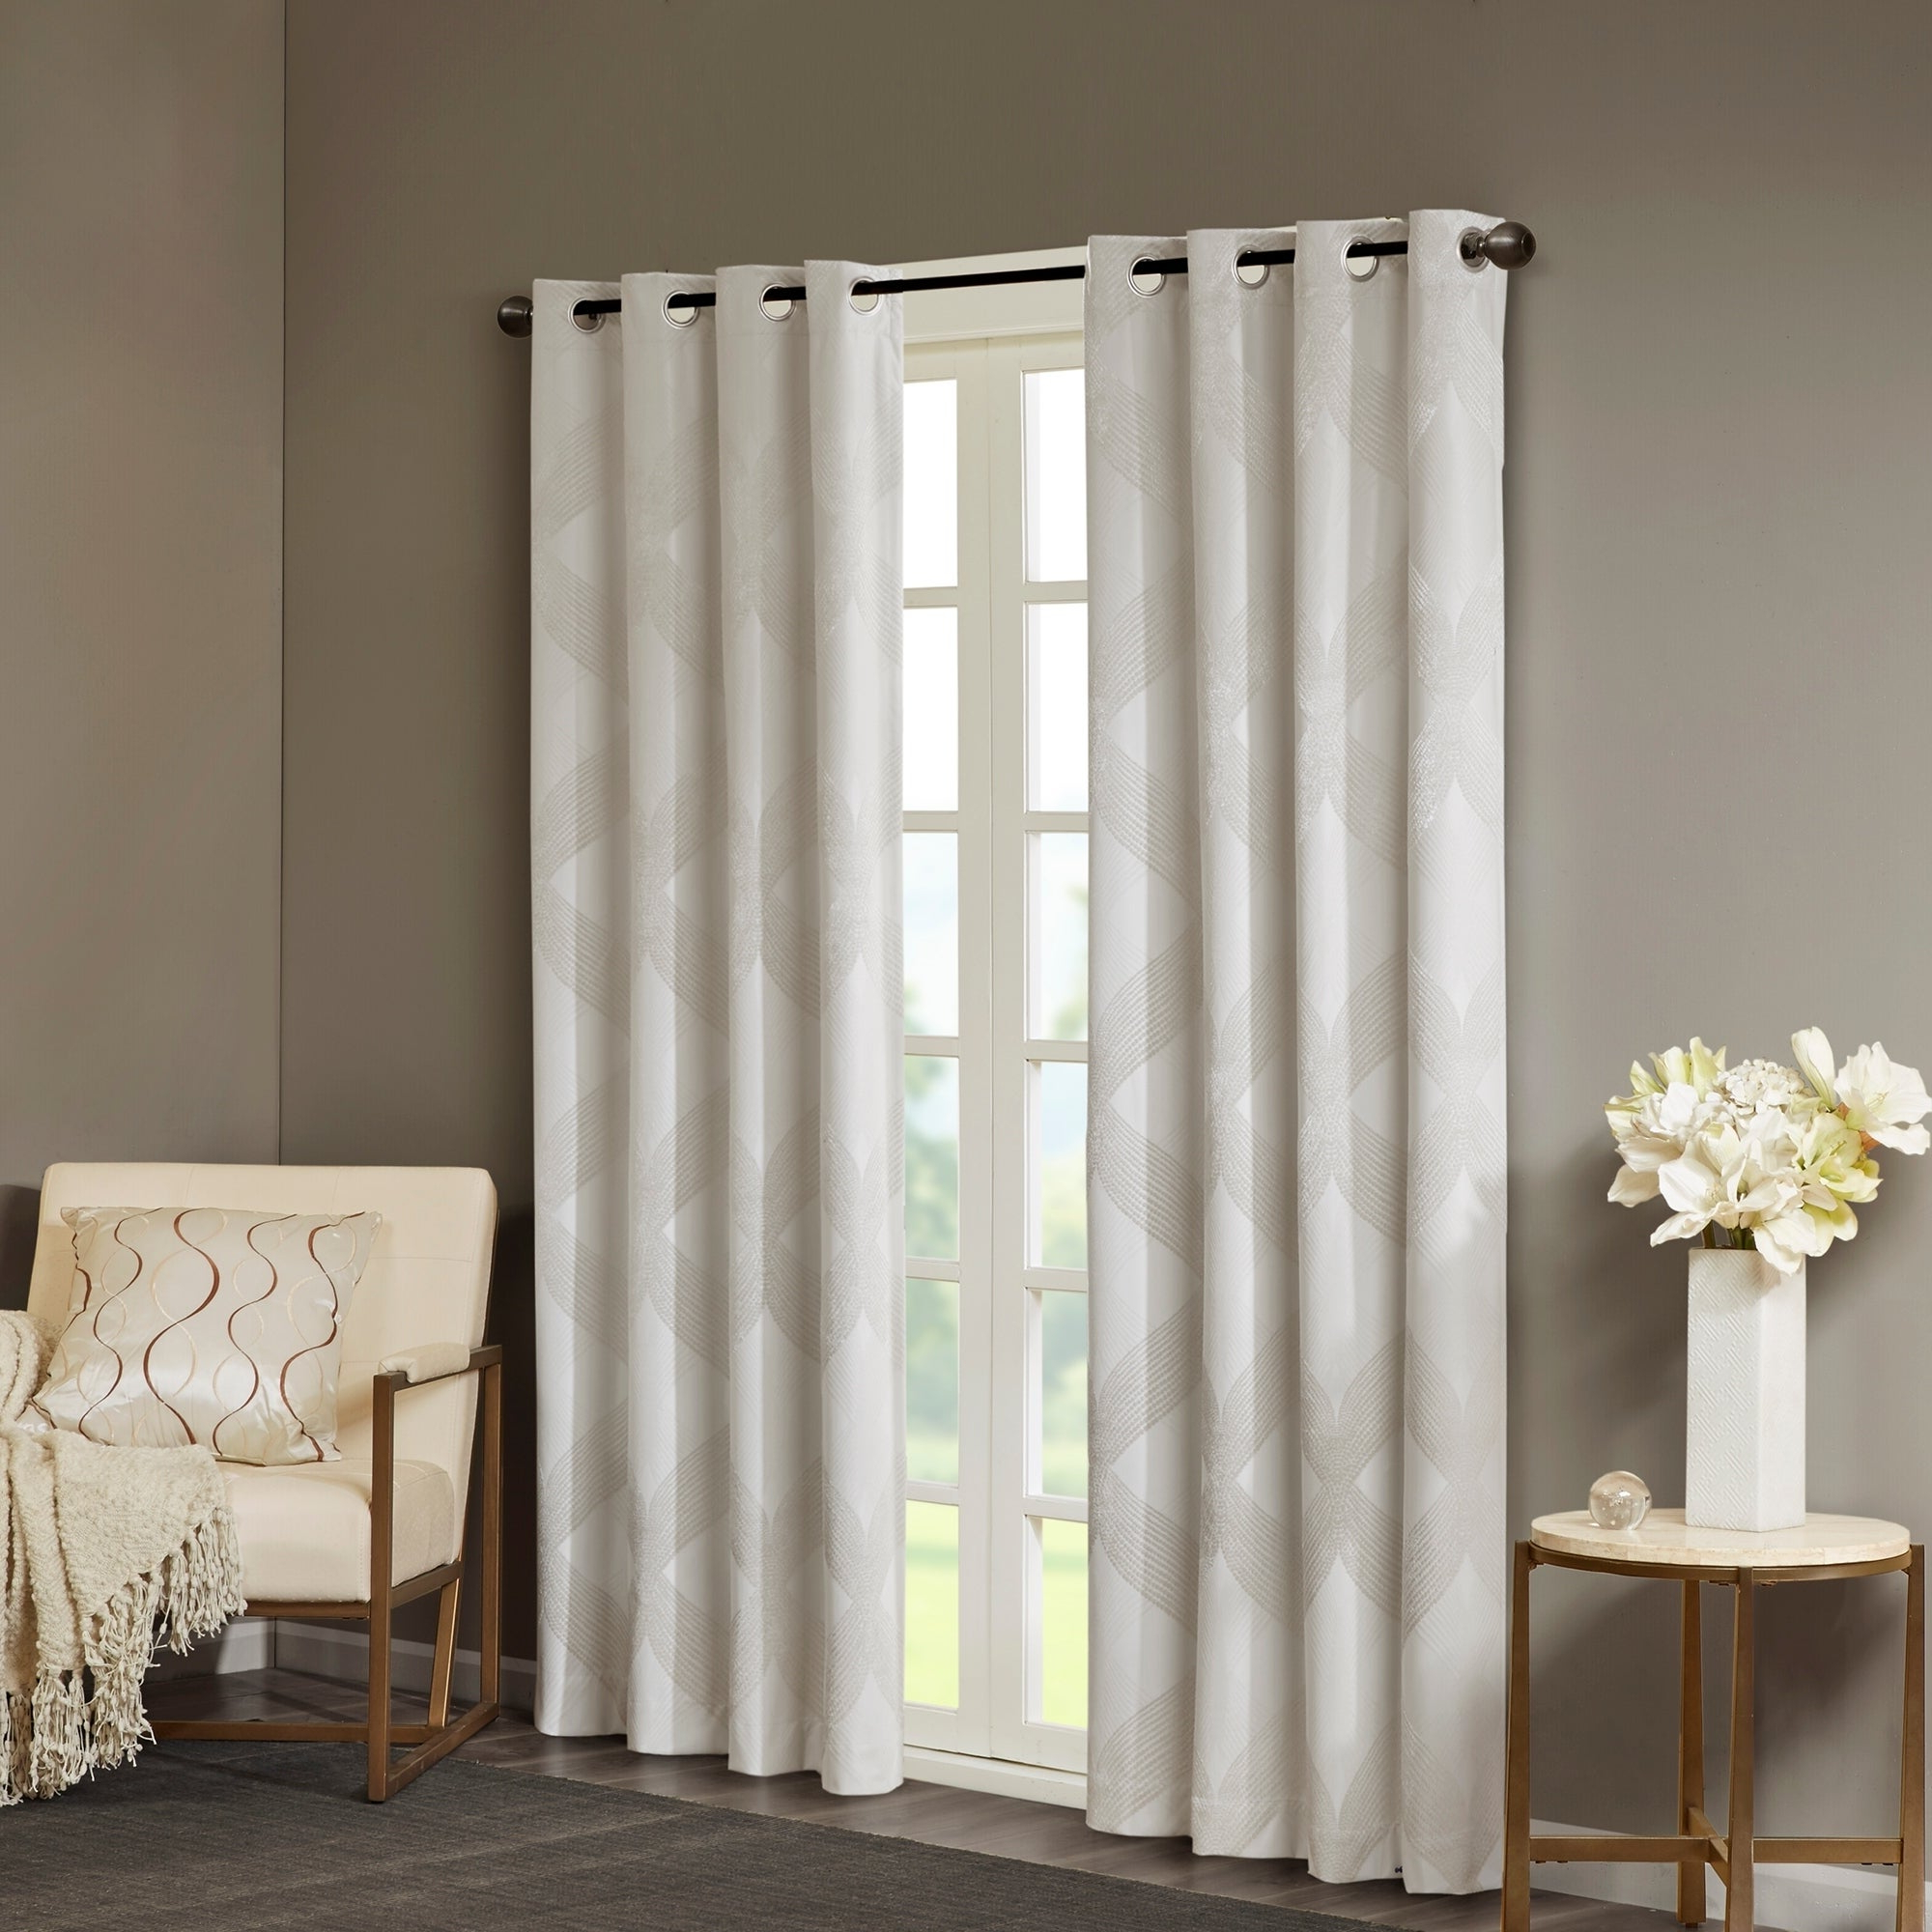 Sunsmart Abel Ogee Knitted Jacquard Total Blackout Curtain Panel Inside Newest Sunsmart Abel Ogee Knitted Jacquard Total Blackout Curtain Panels (View 6 of 20)